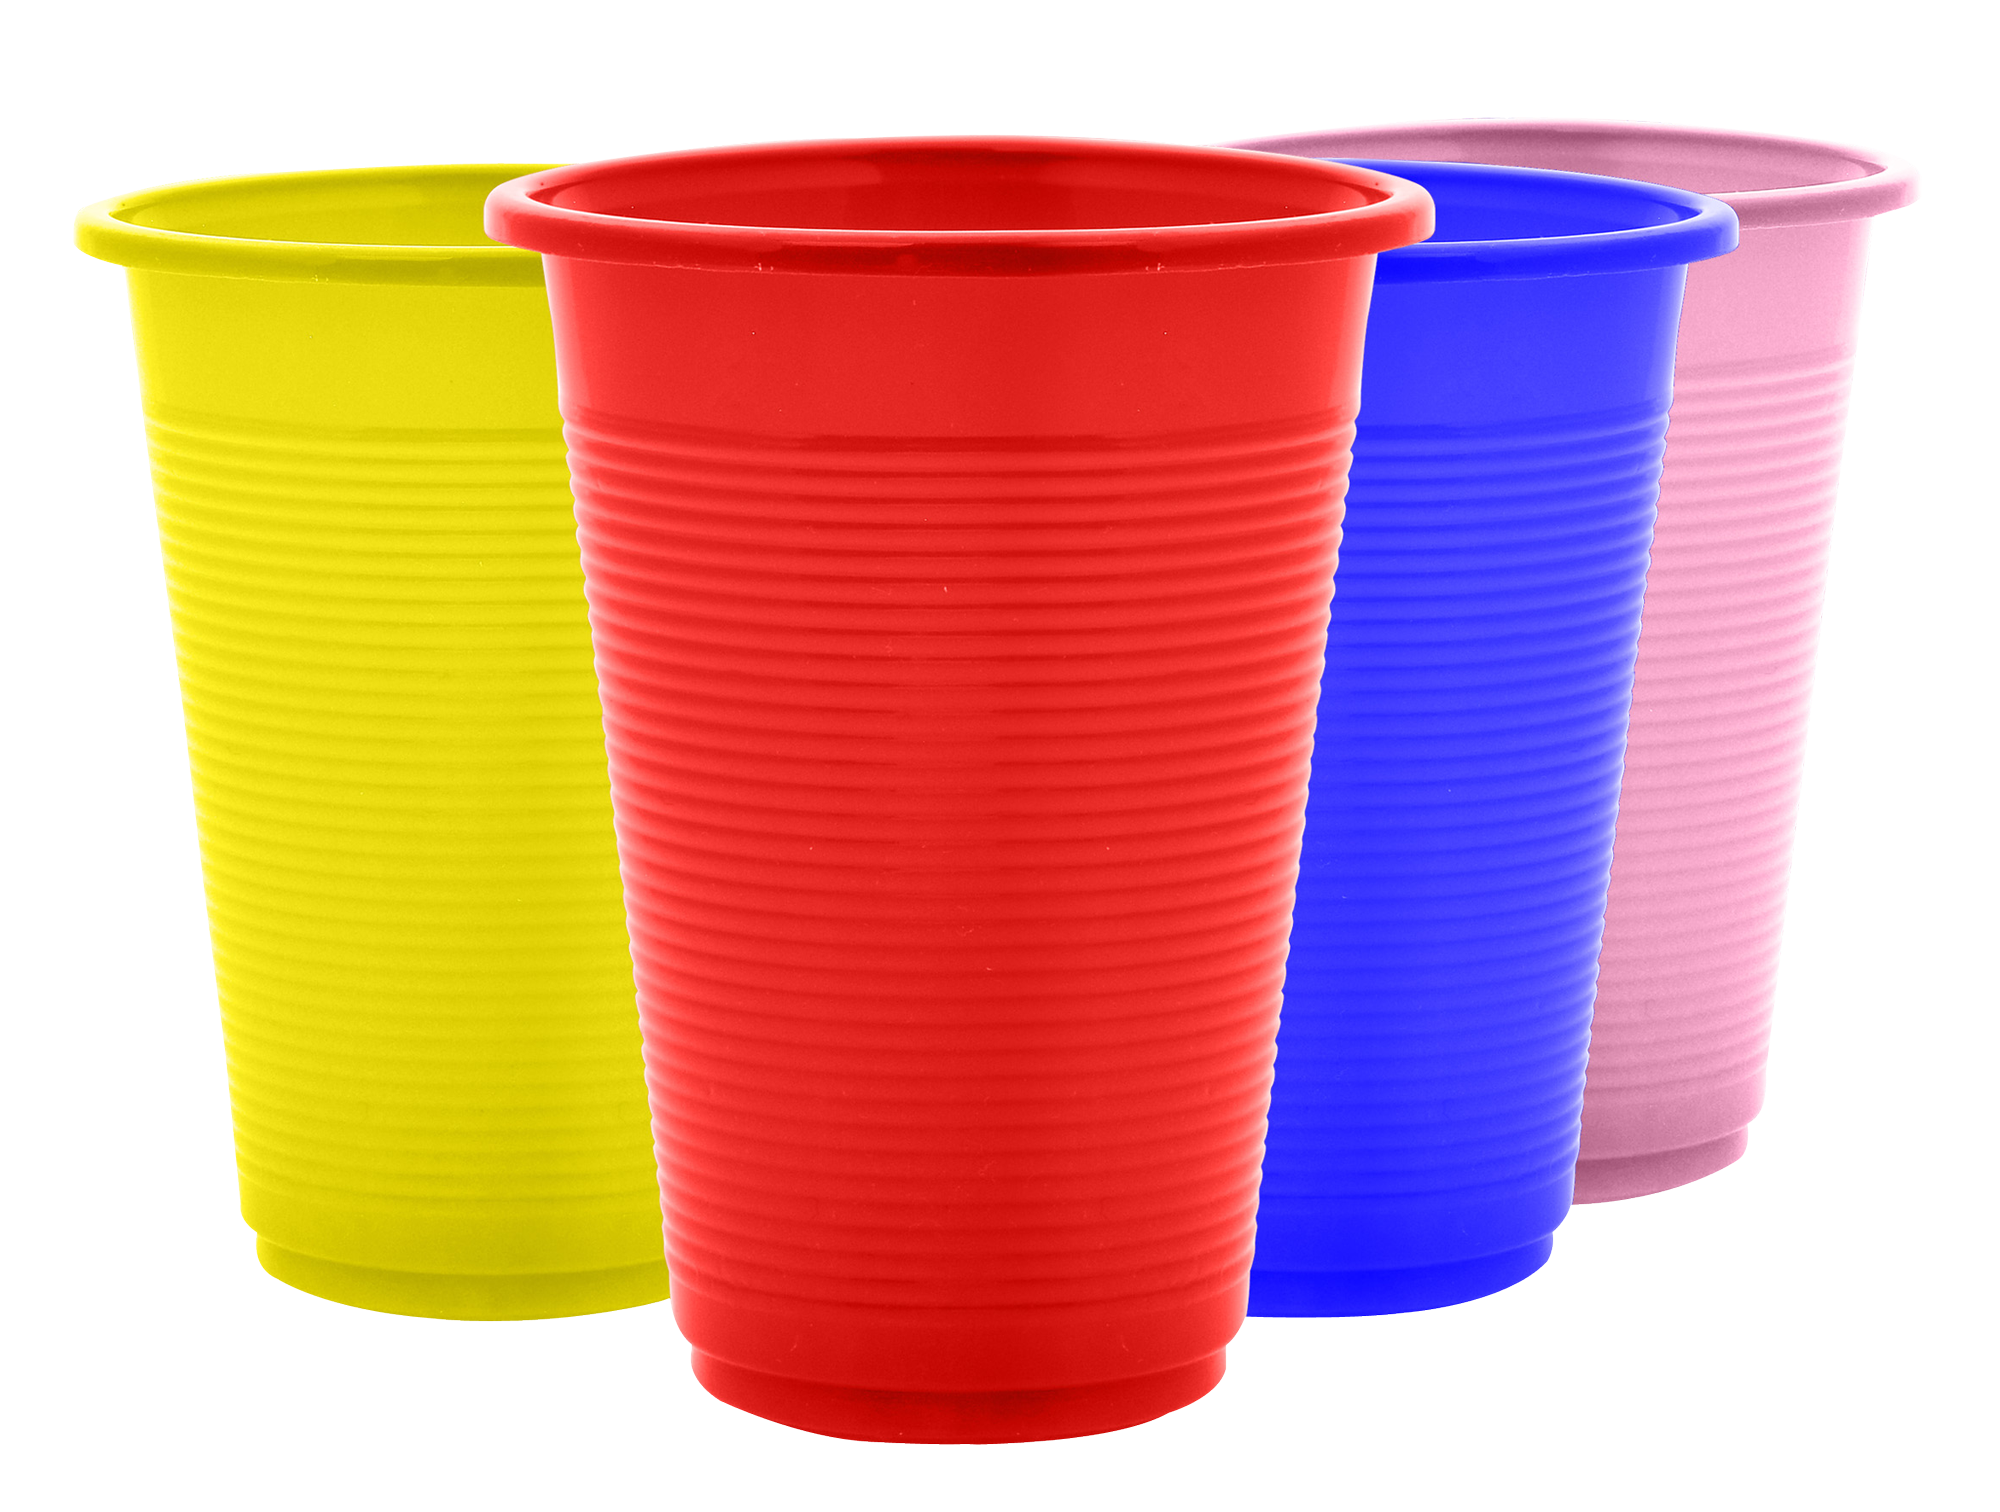 Plastic Cups PNG Image